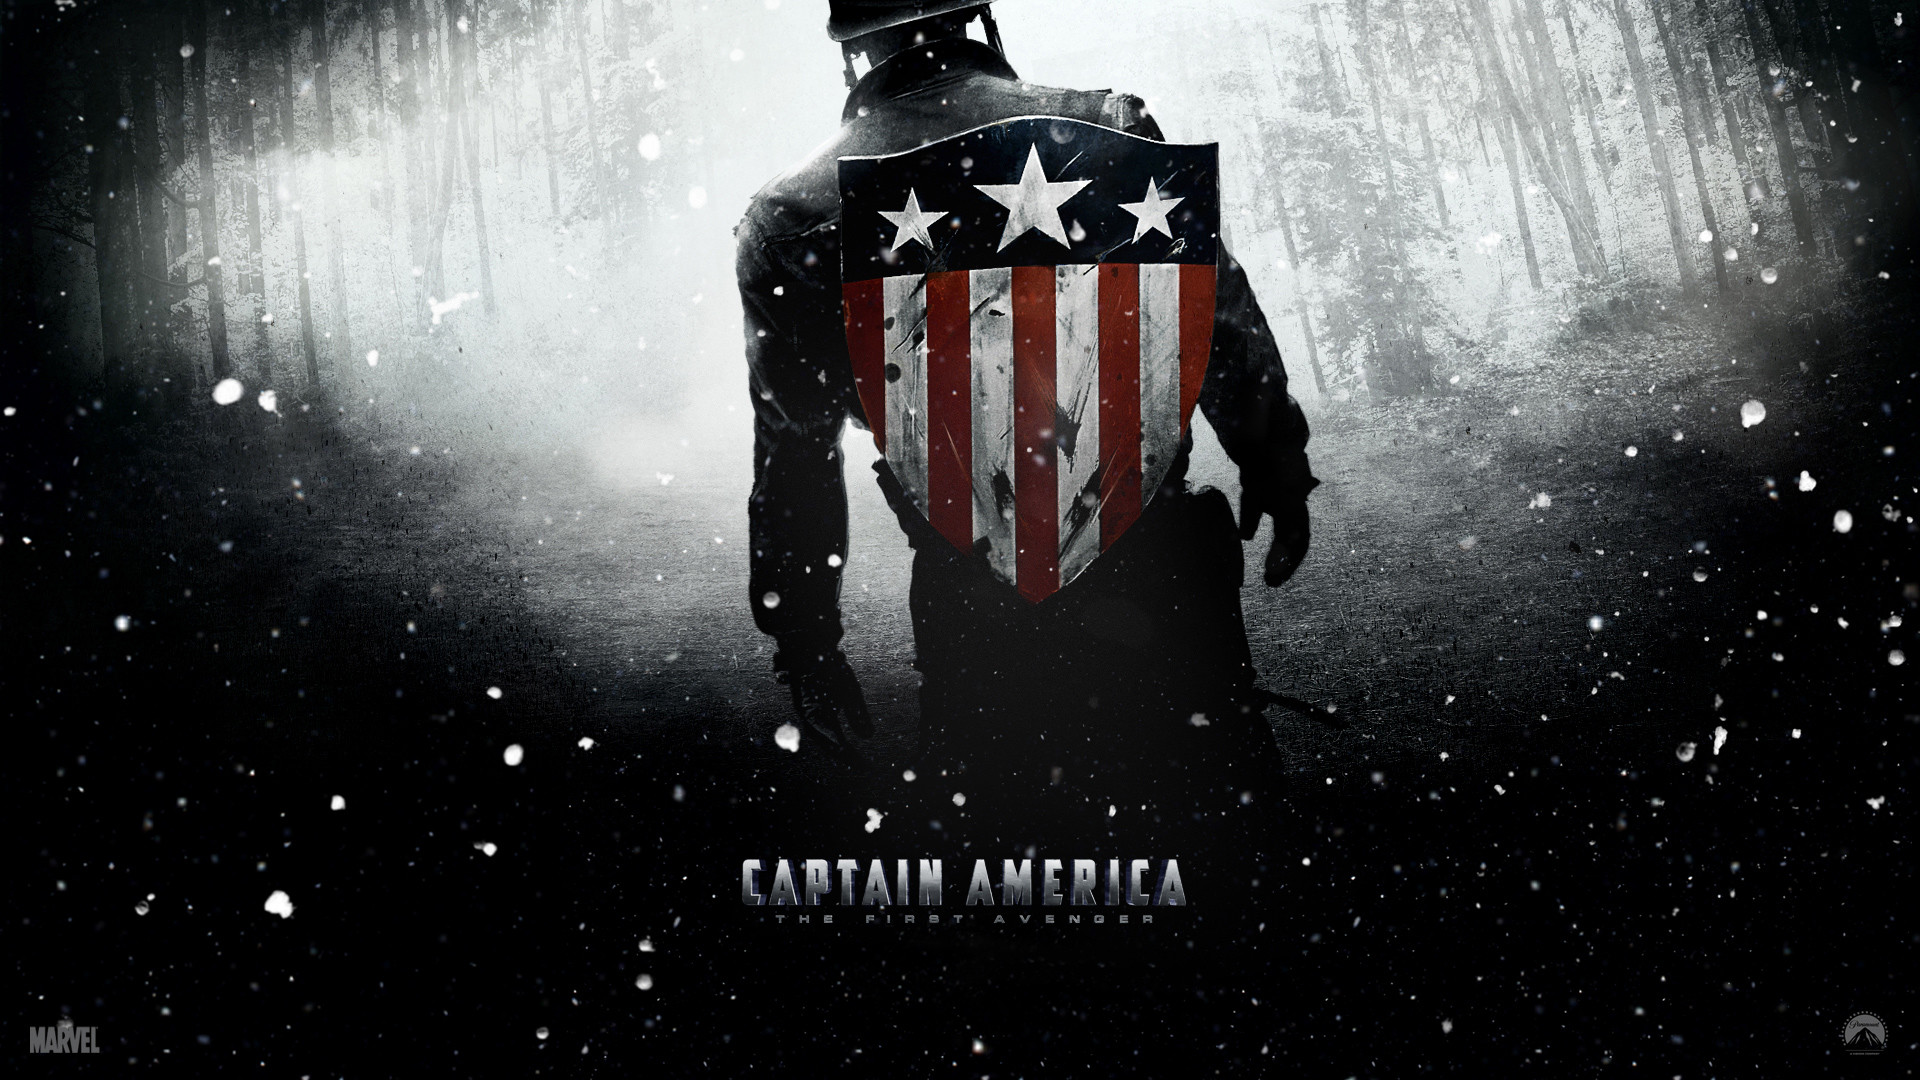 Captain America Wallpapers | HD Wallpapers